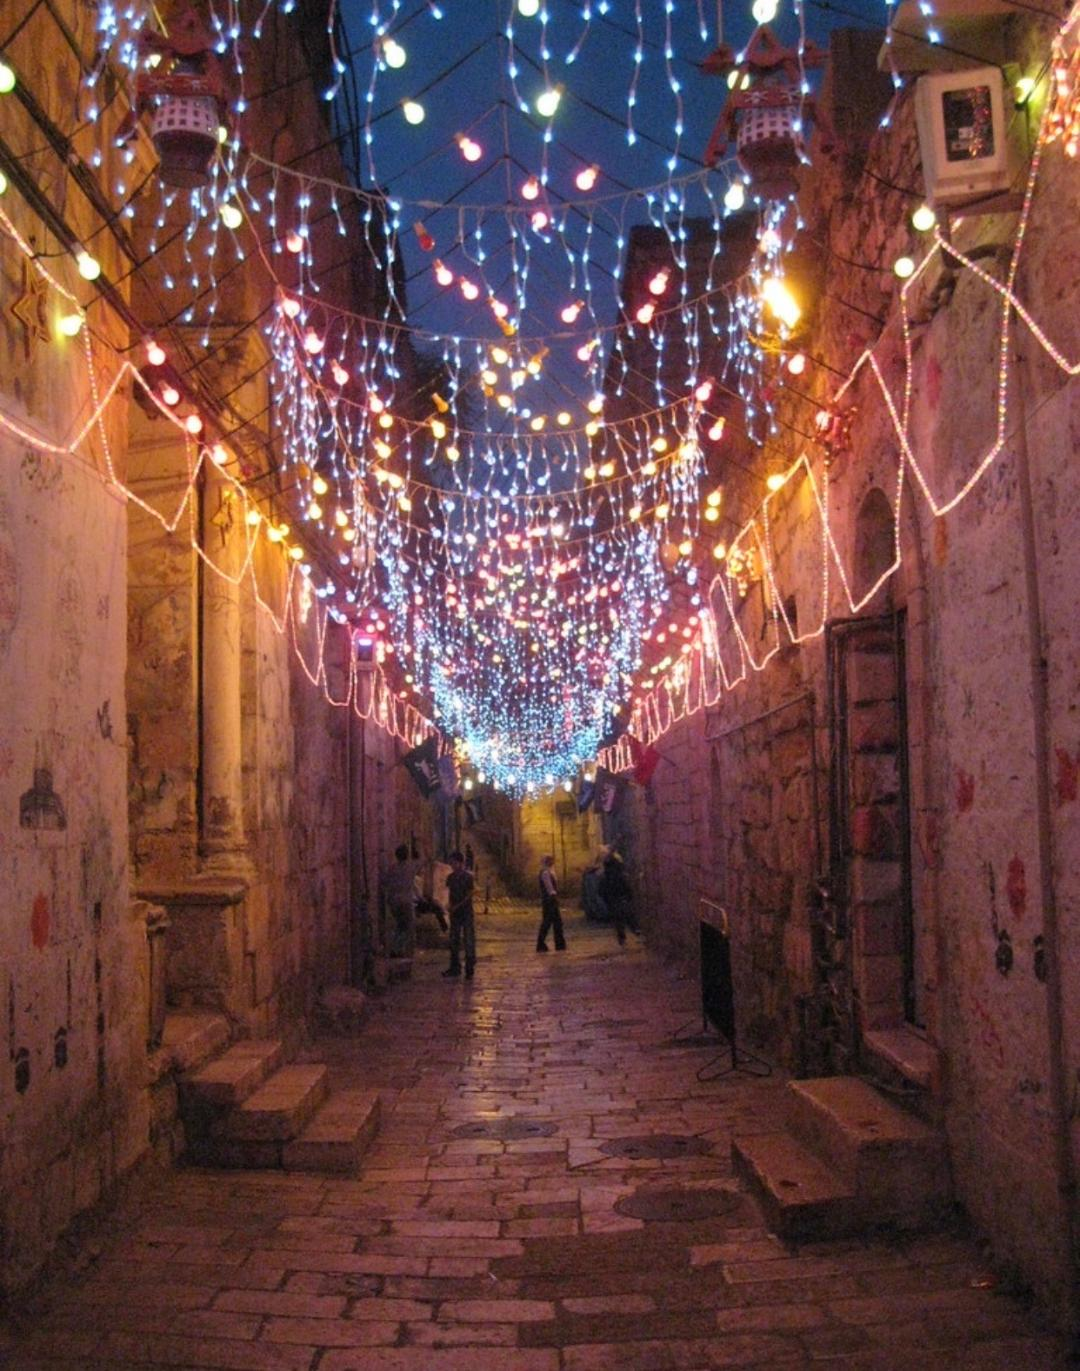 Decorated for Ramadan, the streets of Jerusalem shine into the night. Ramadan is one of the biggest celebrations within the Islamic faith, and it started at sundown last night!